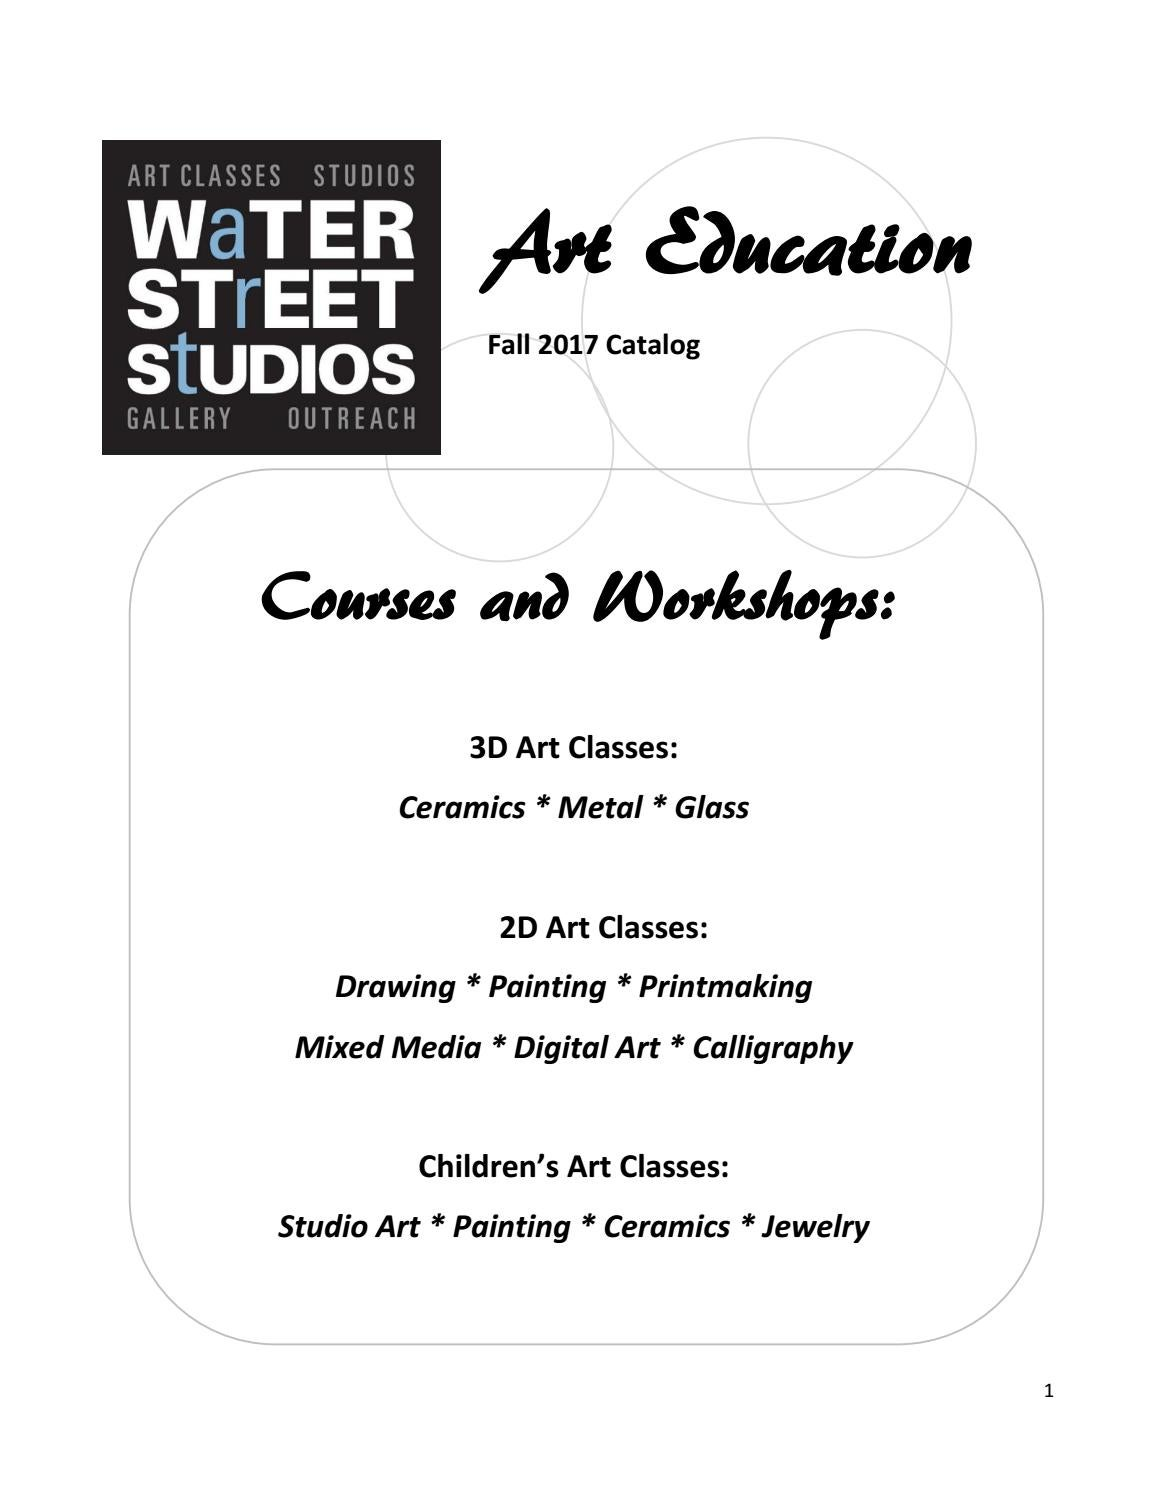 Water Street Studios Fall 2017 Art Education Catalog by